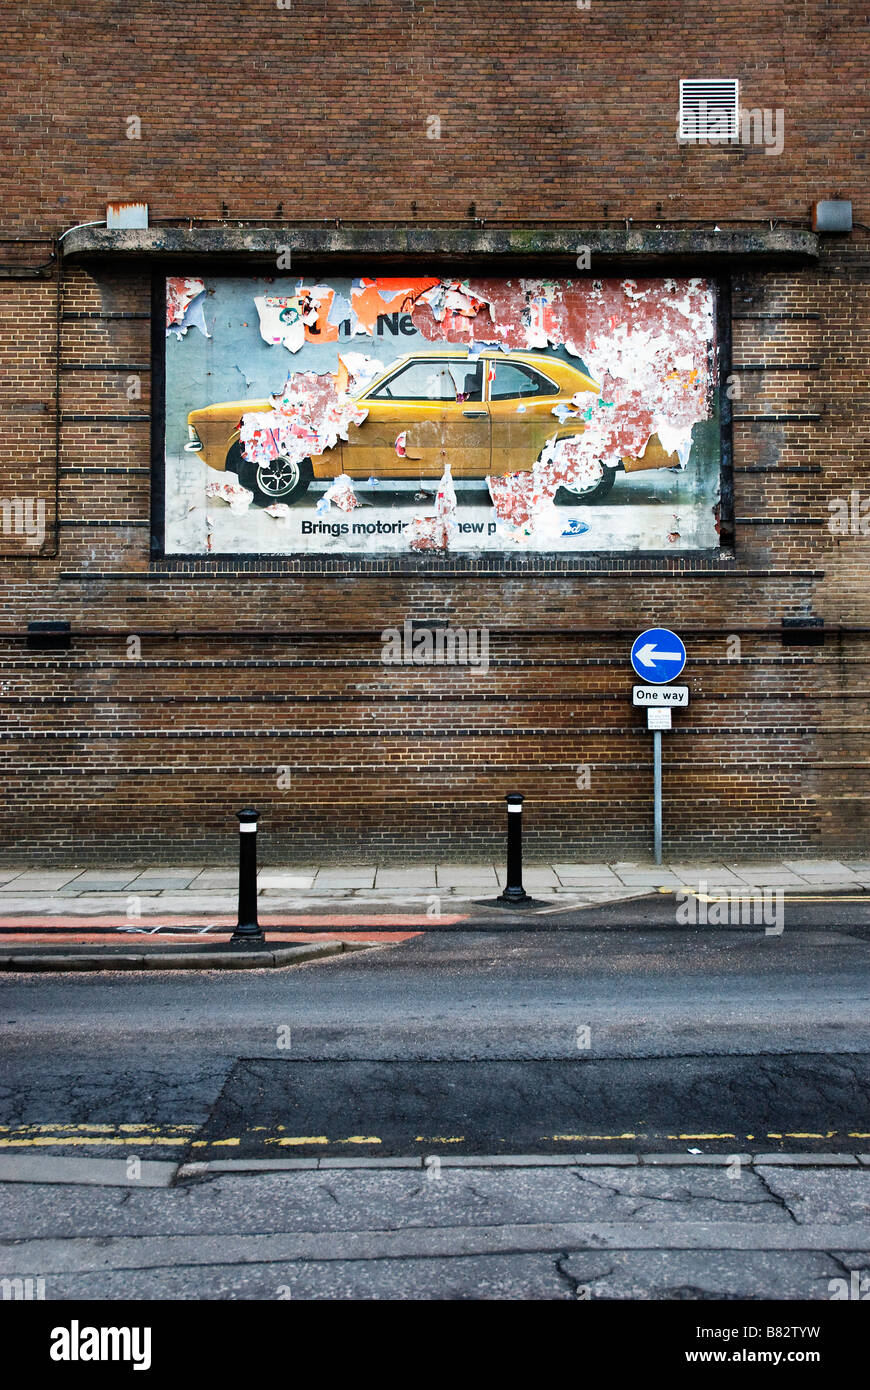 1970s Ford car poster on cinema brick wall, with one way sign - Stock Image